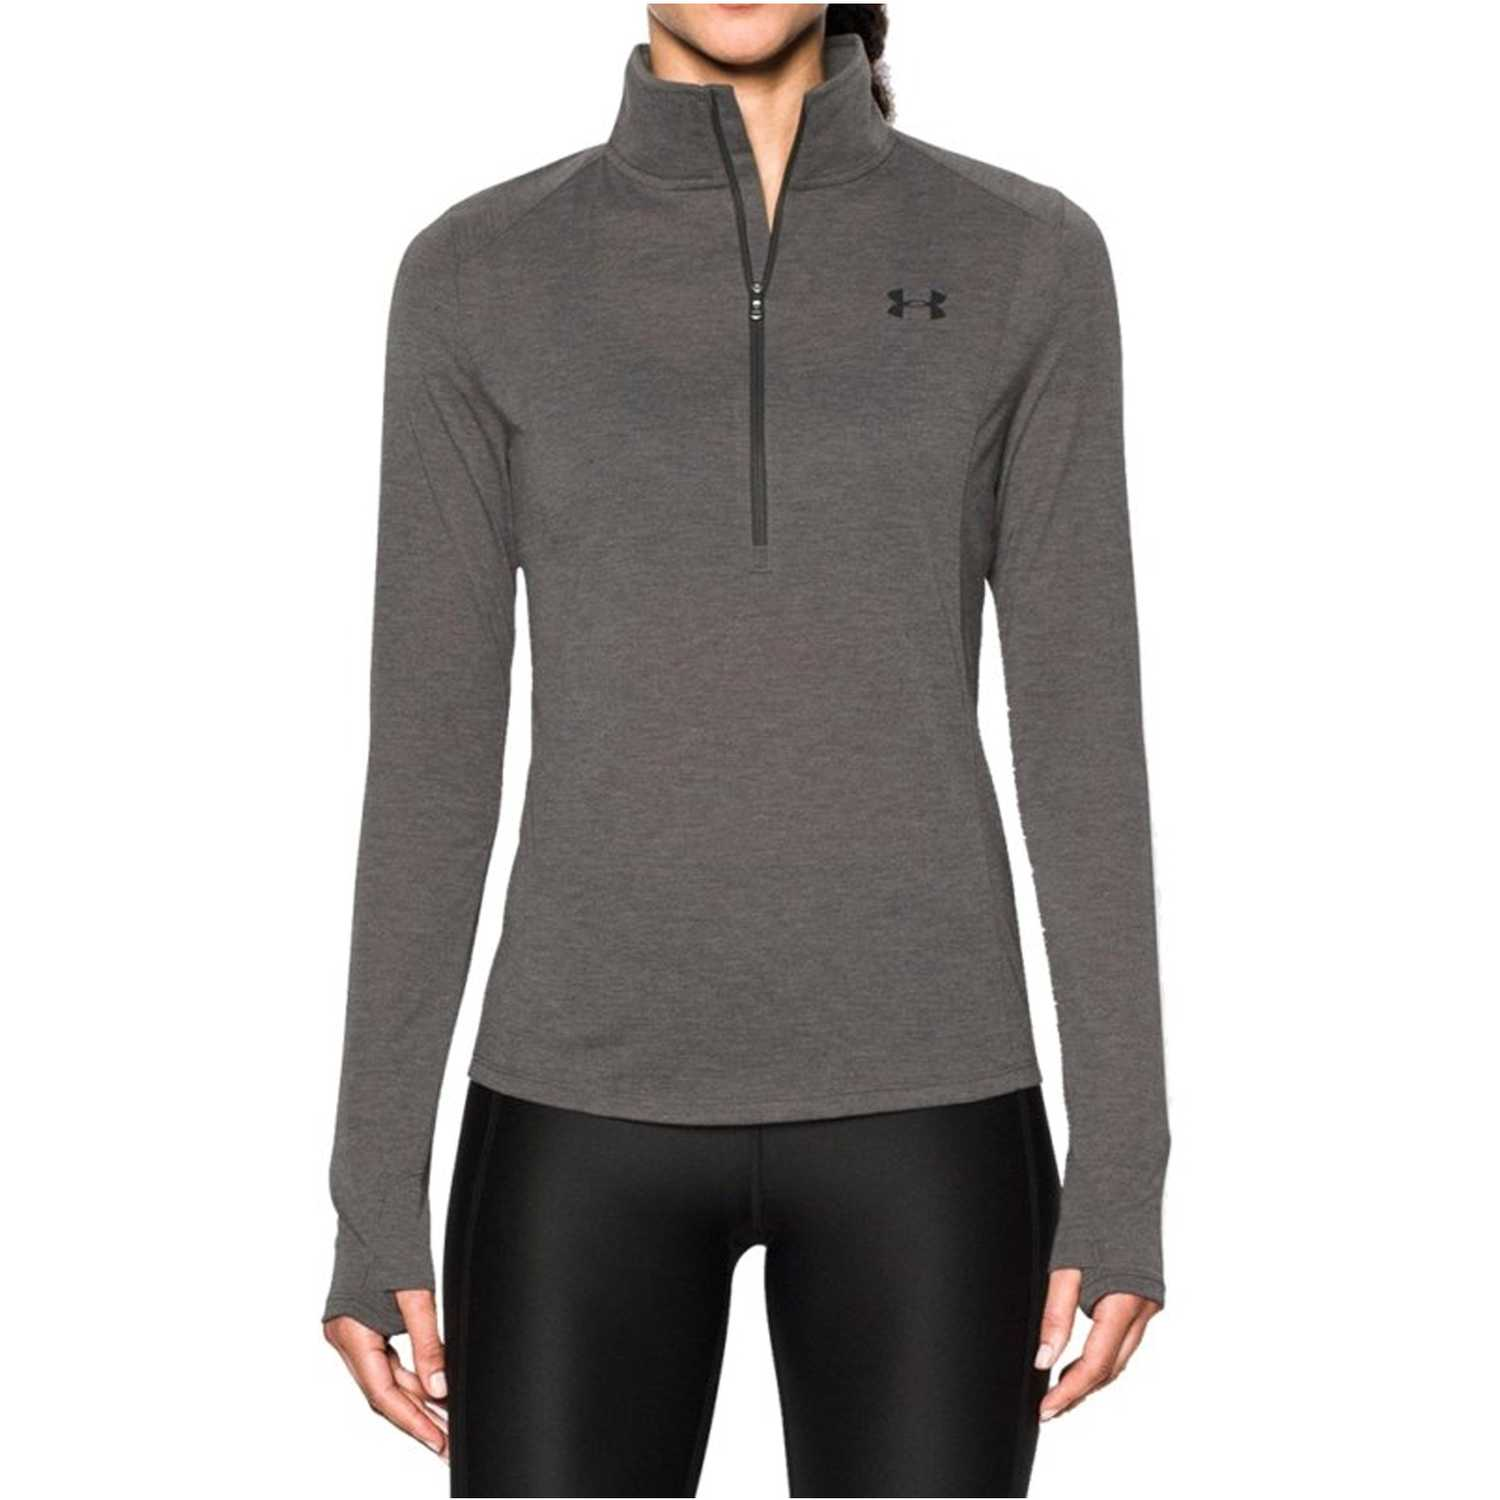 Deportivo de Mujer Under Armour Gris threadborne train 1/2 zip